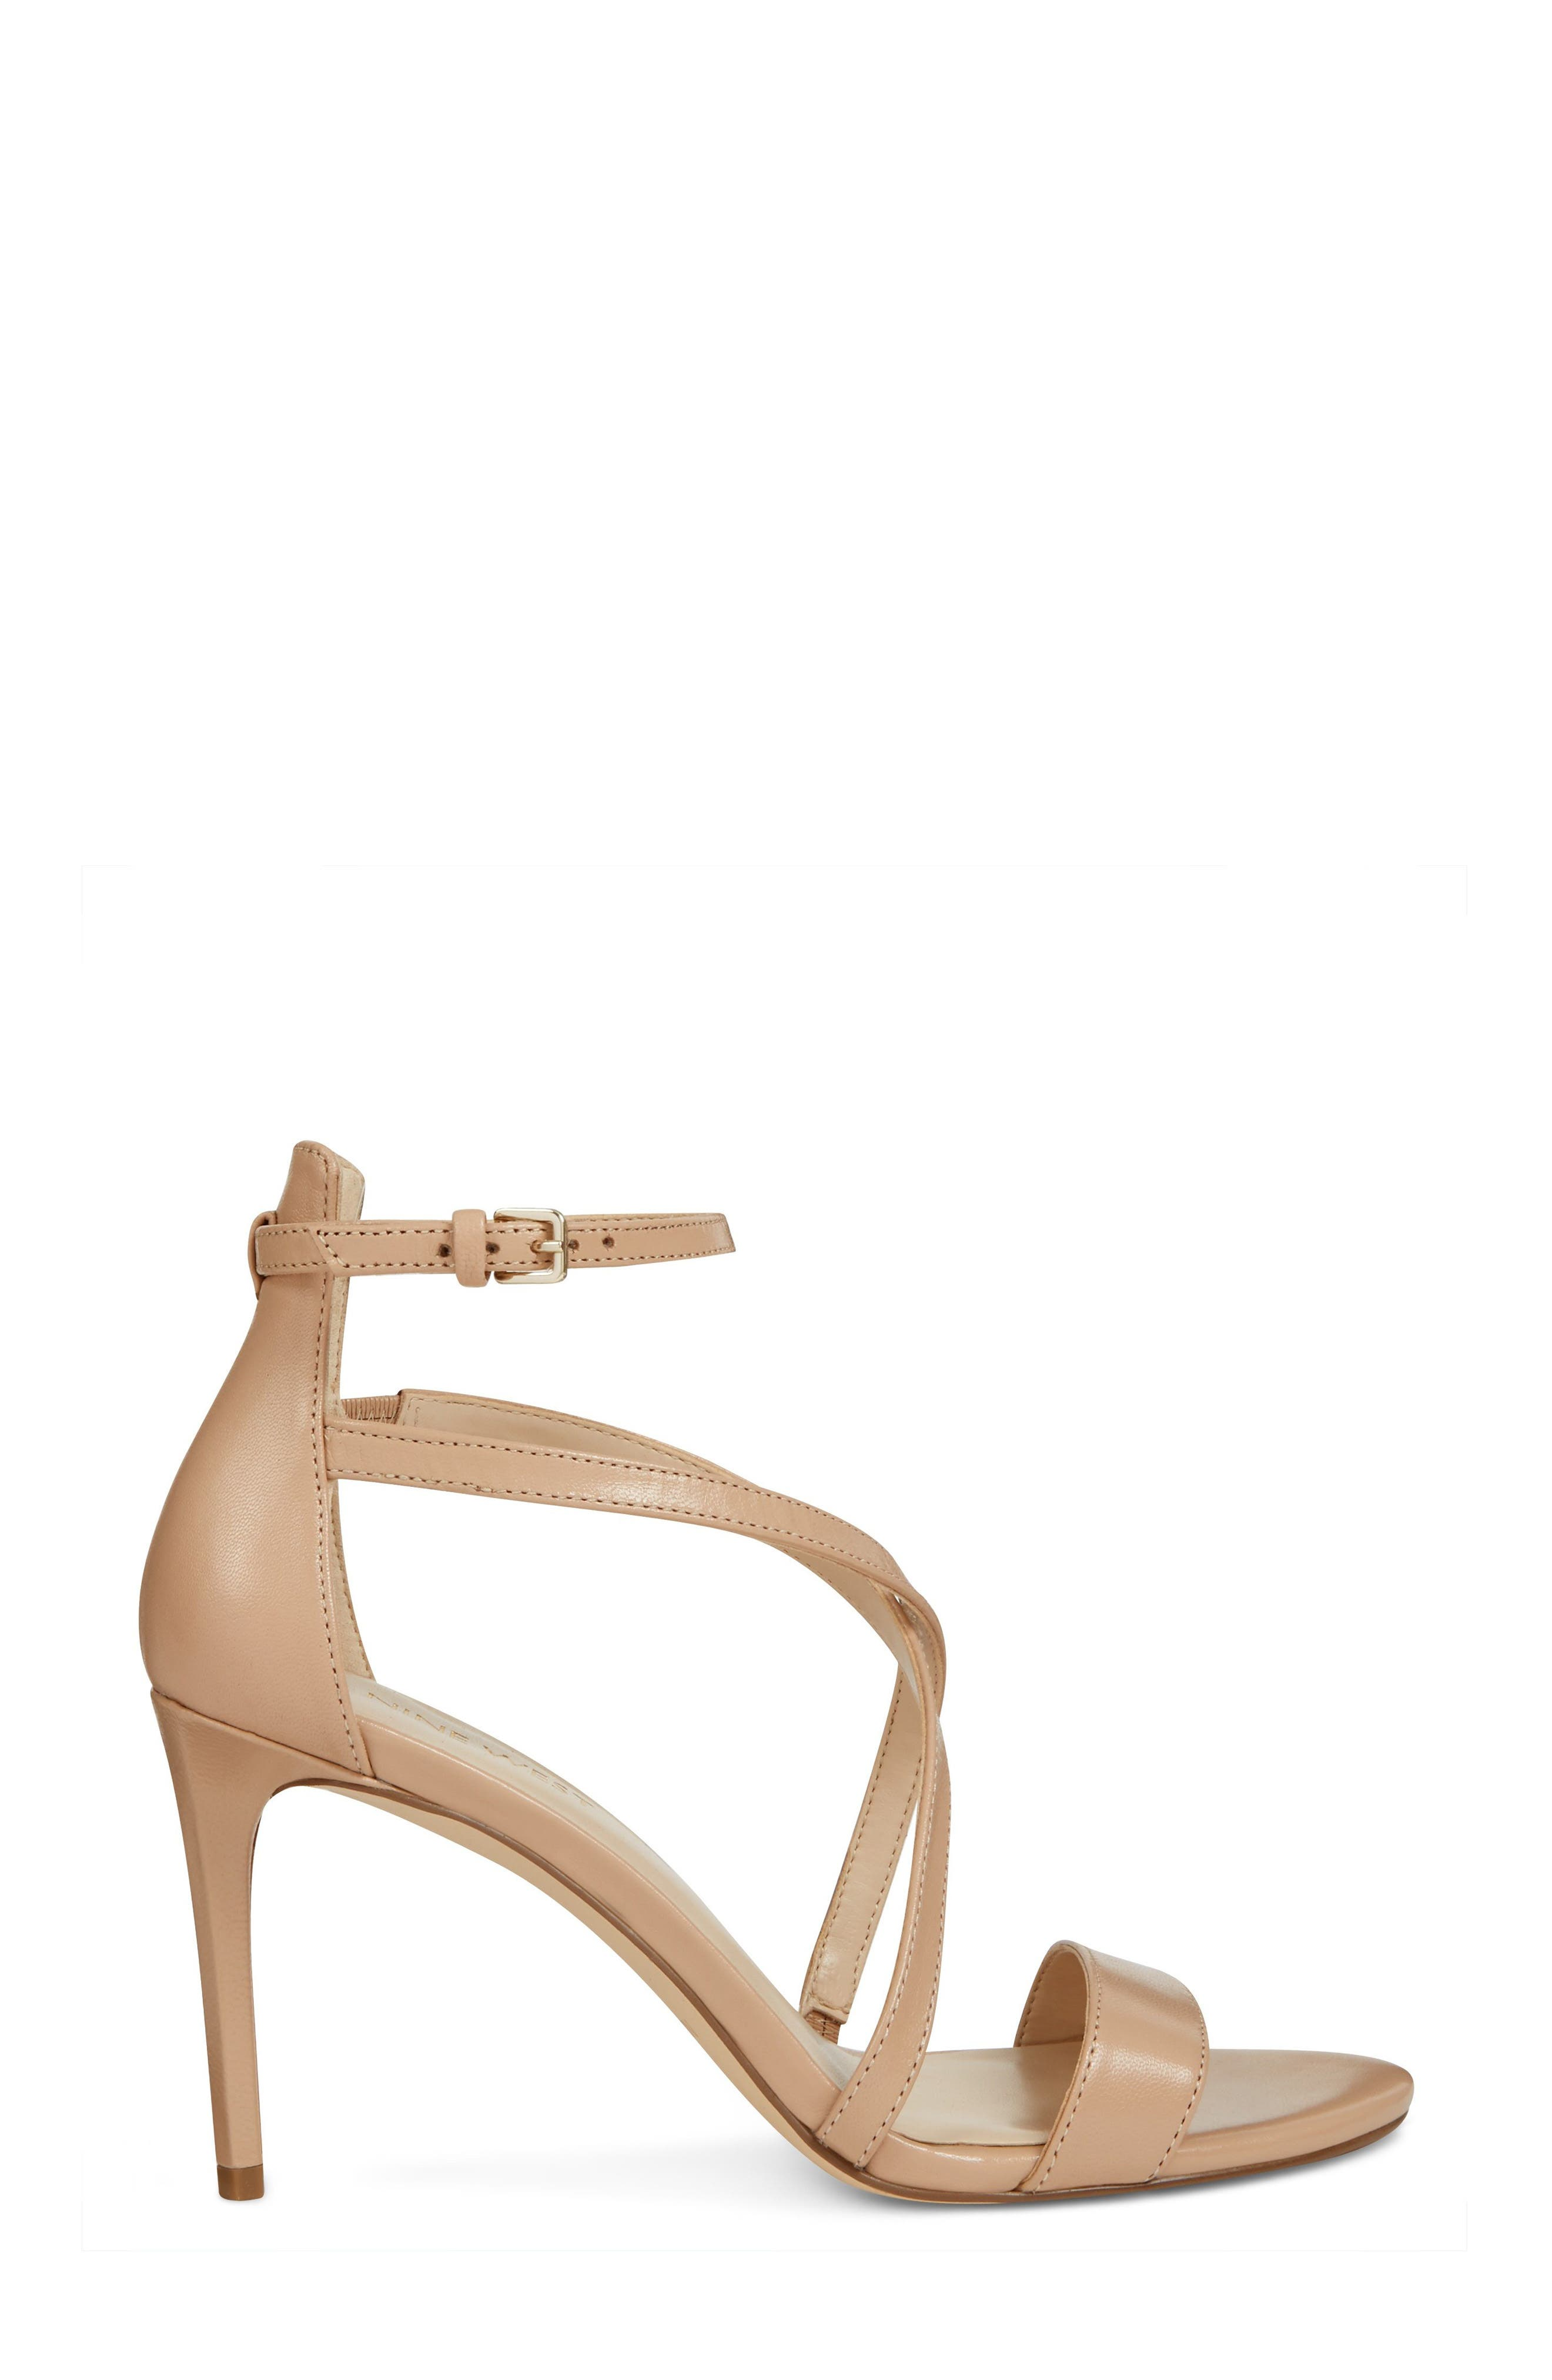 Retail Therapy Strappy Sandal,                             Alternate thumbnail 3, color,                             NATURAL LEATHER